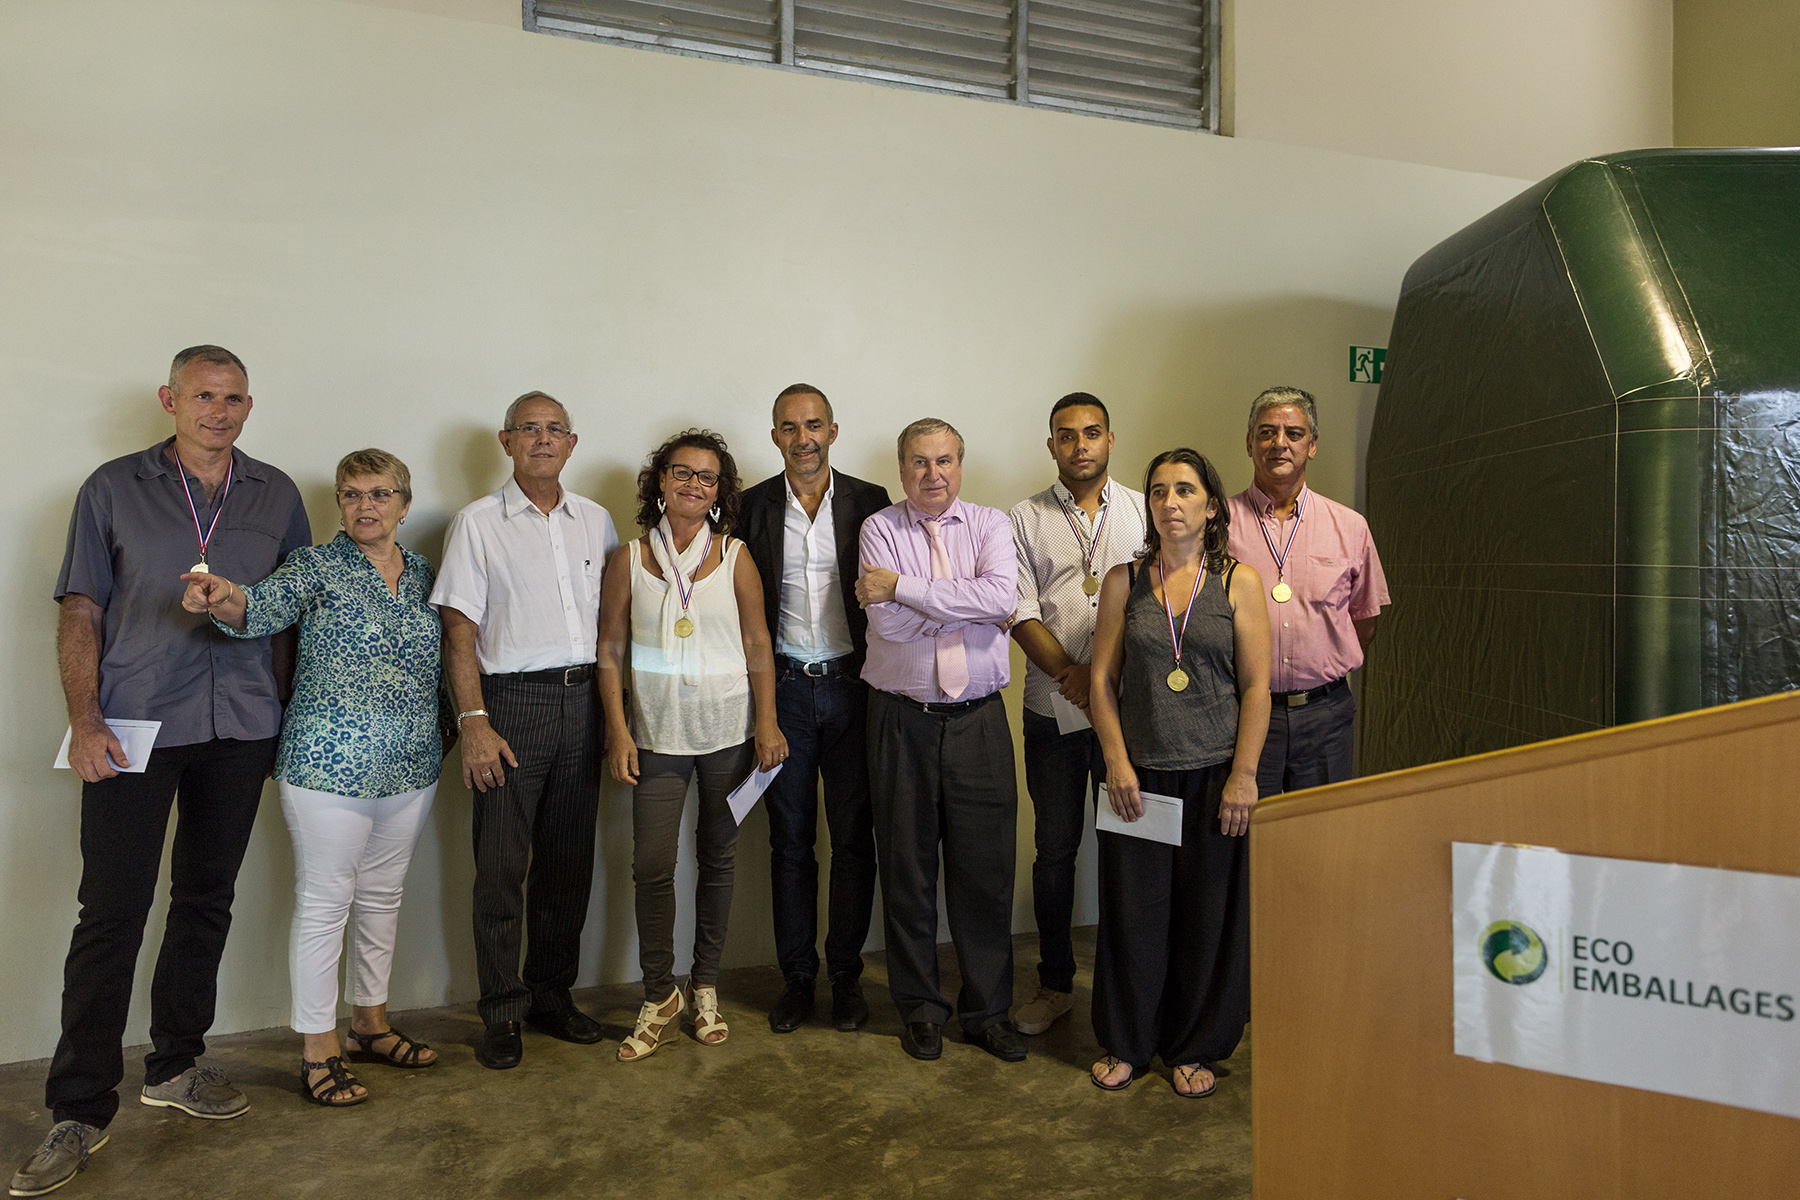 The Eco-Emballages President's Visit in Reunion IslandShot for Euros Agency© Arnaud Andrieu 2016